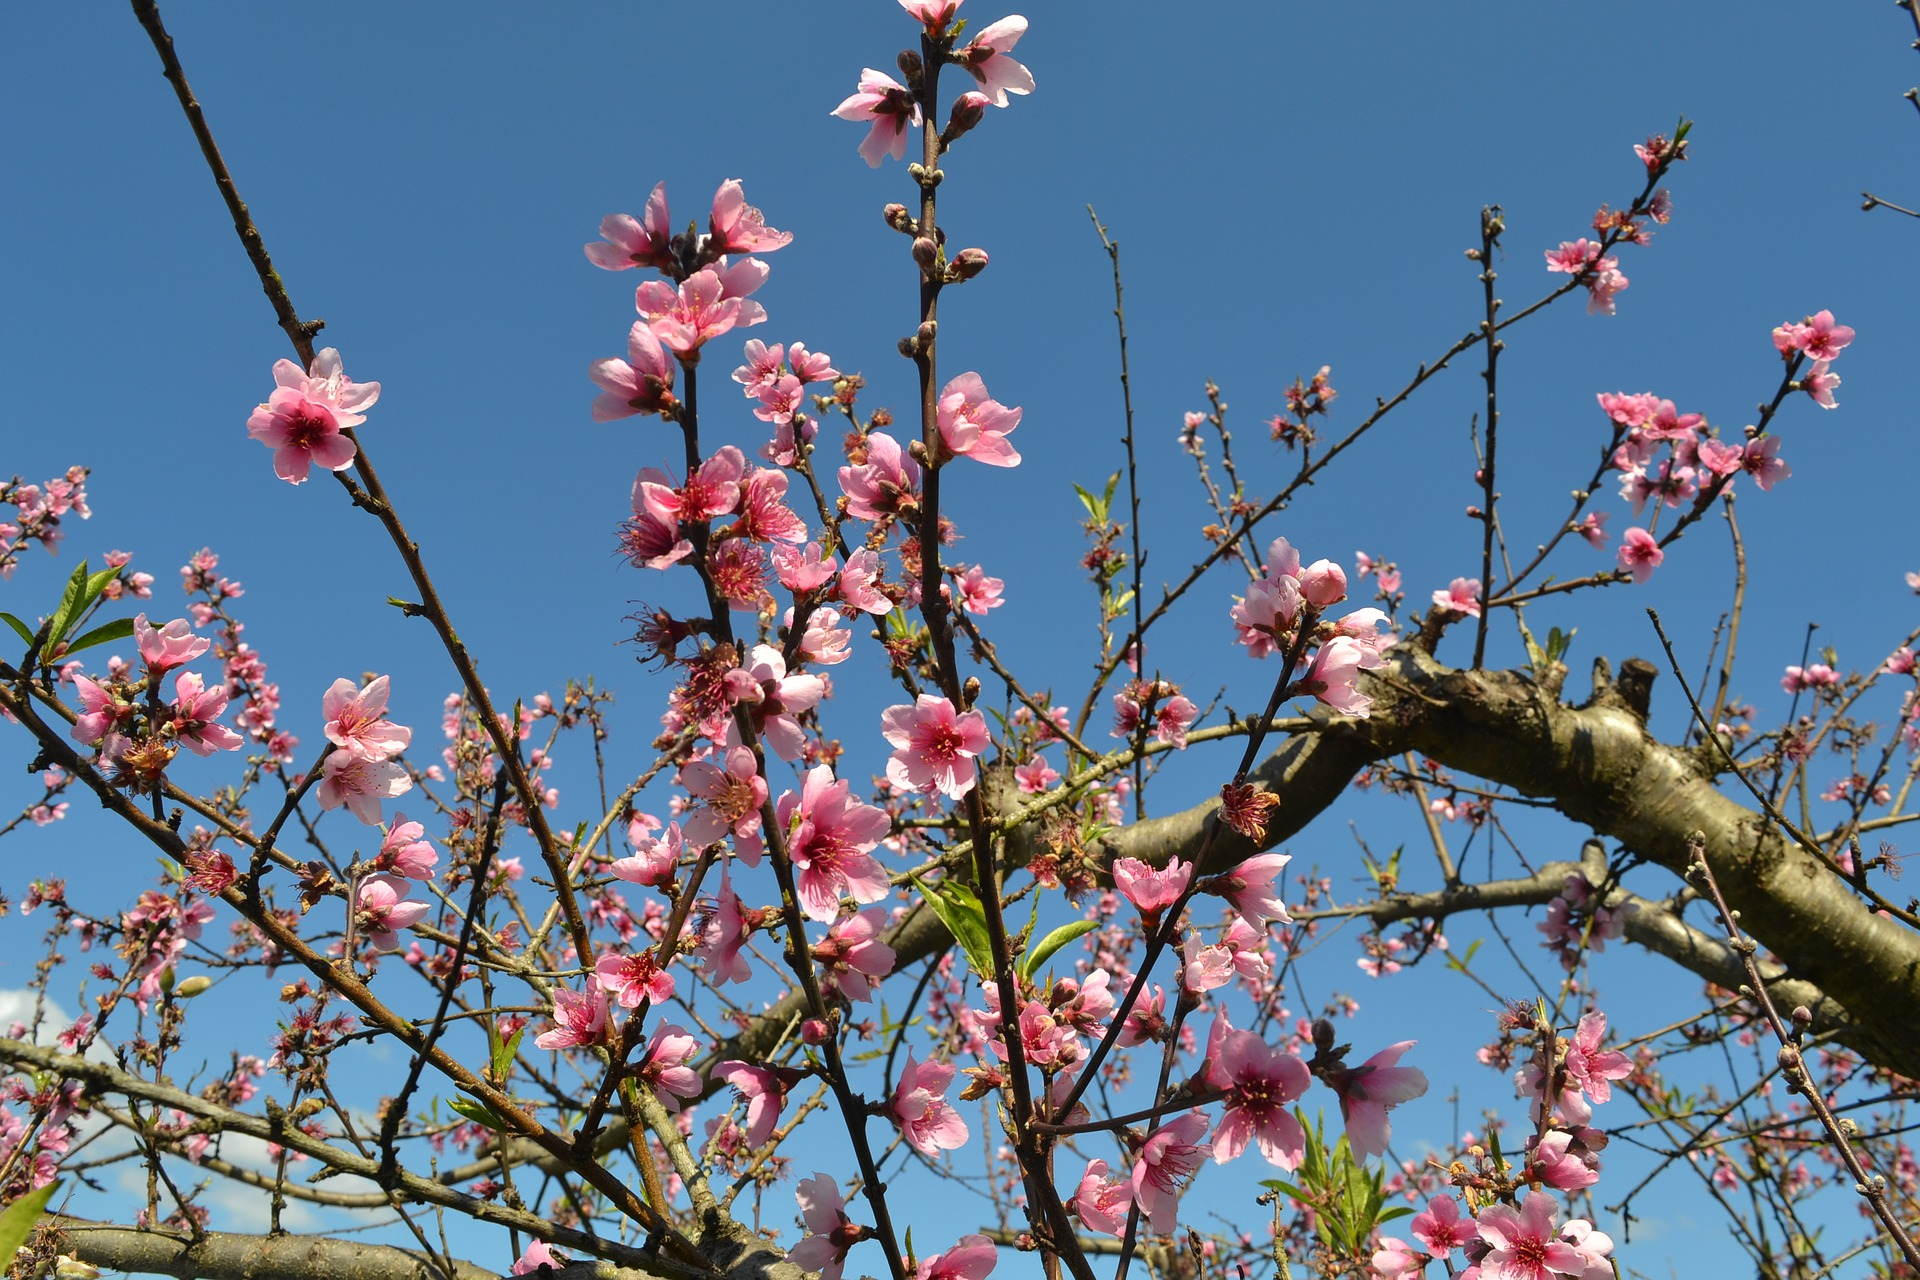 peach blossoms on blue sky